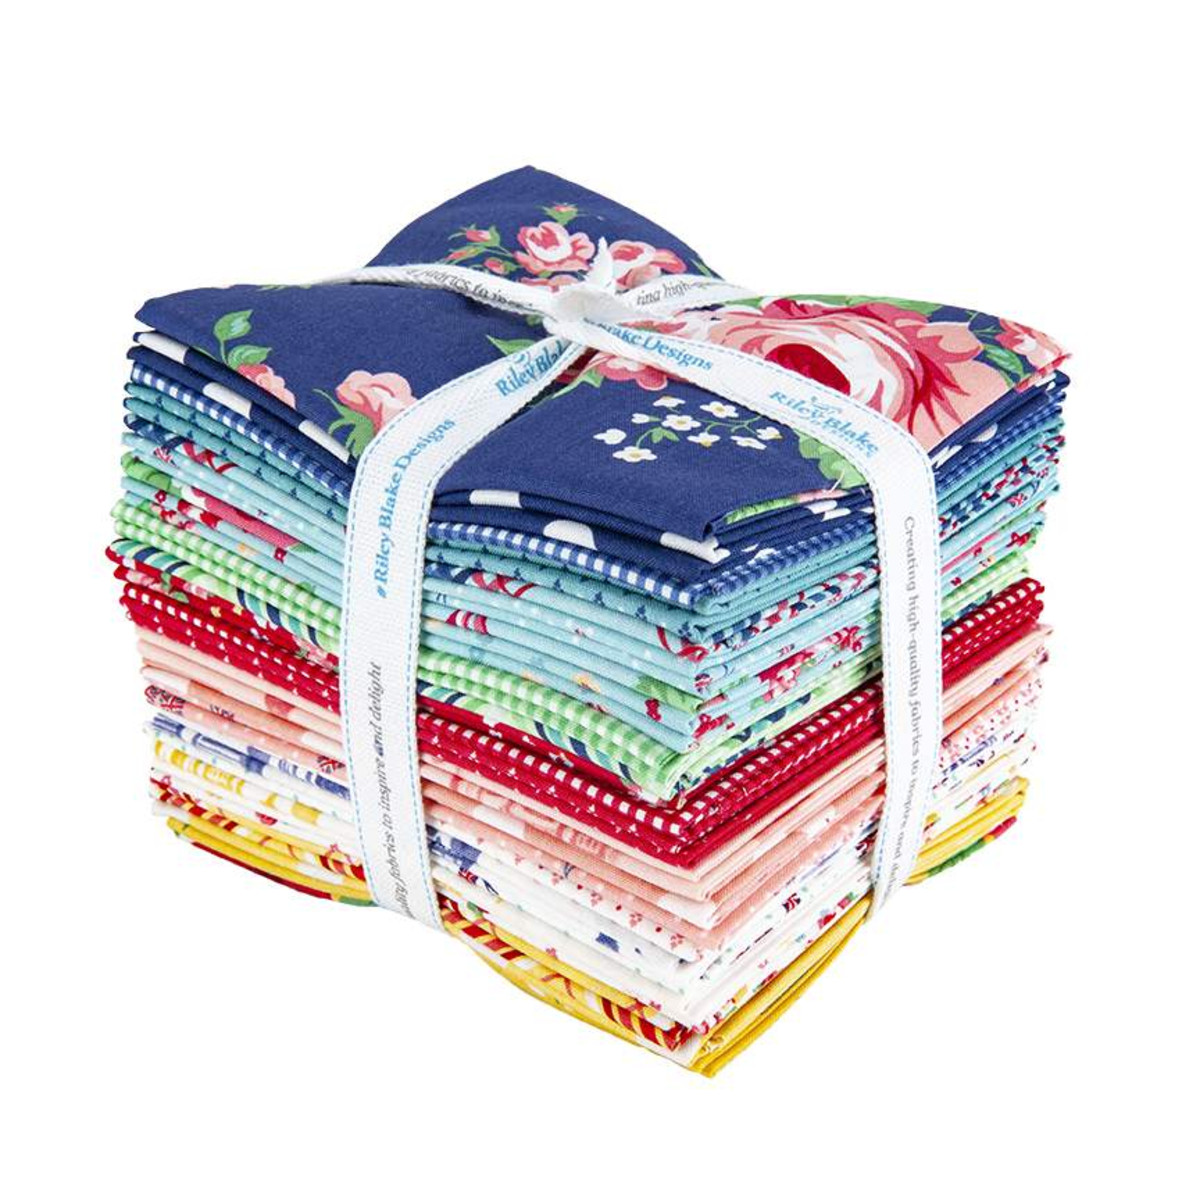 Riley Blake Fat Quarter Bundle - Notting Hill by Amy Smart